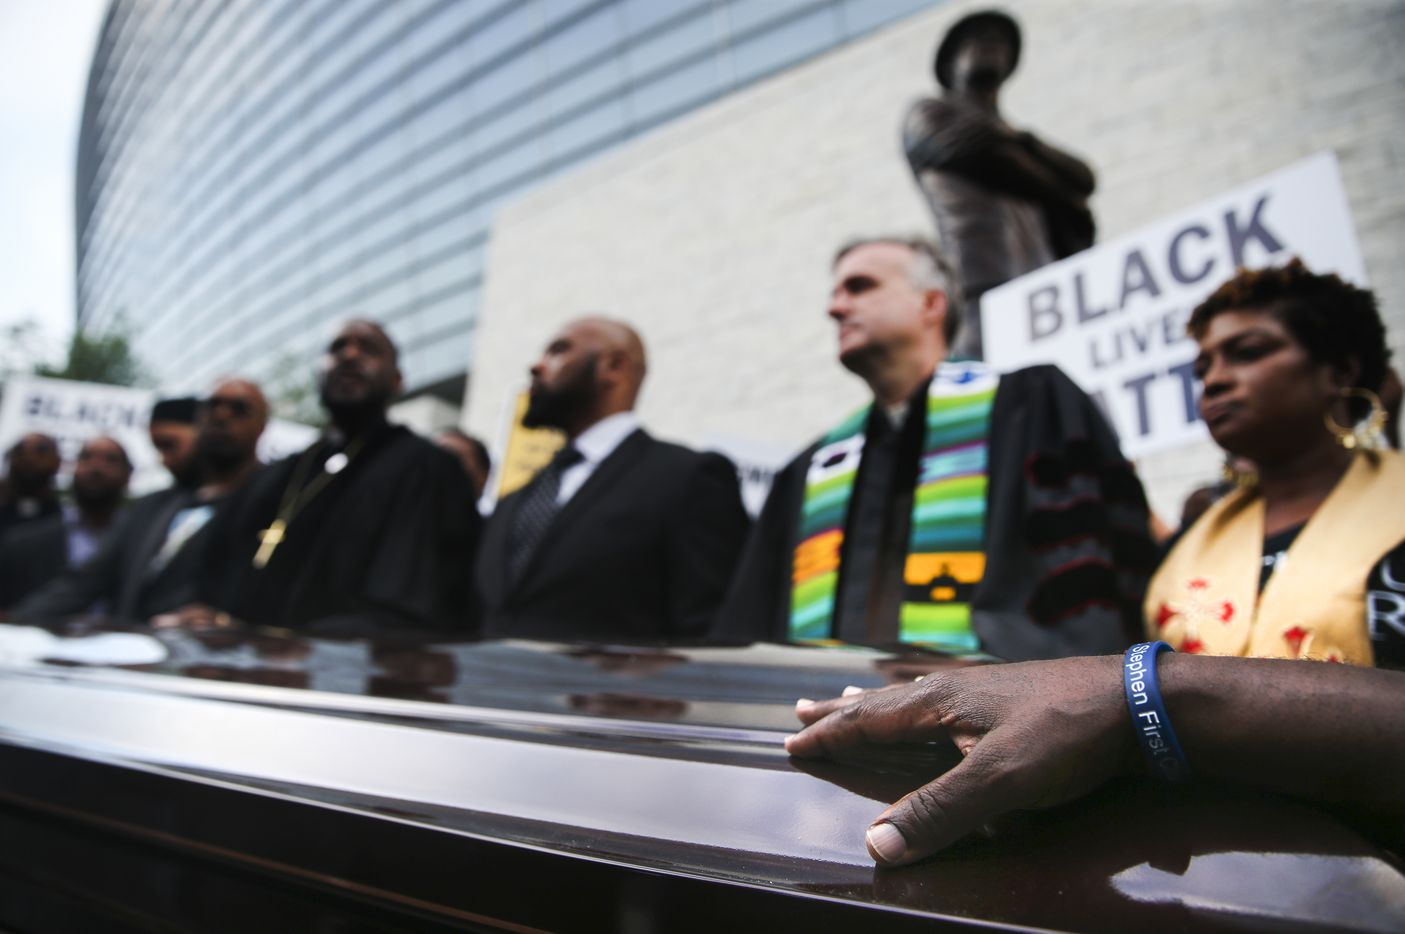 Members of the clergy and community place their hands upon two empty coffins symbolizing the double-murder of black victims' bodies and their names during the protest.